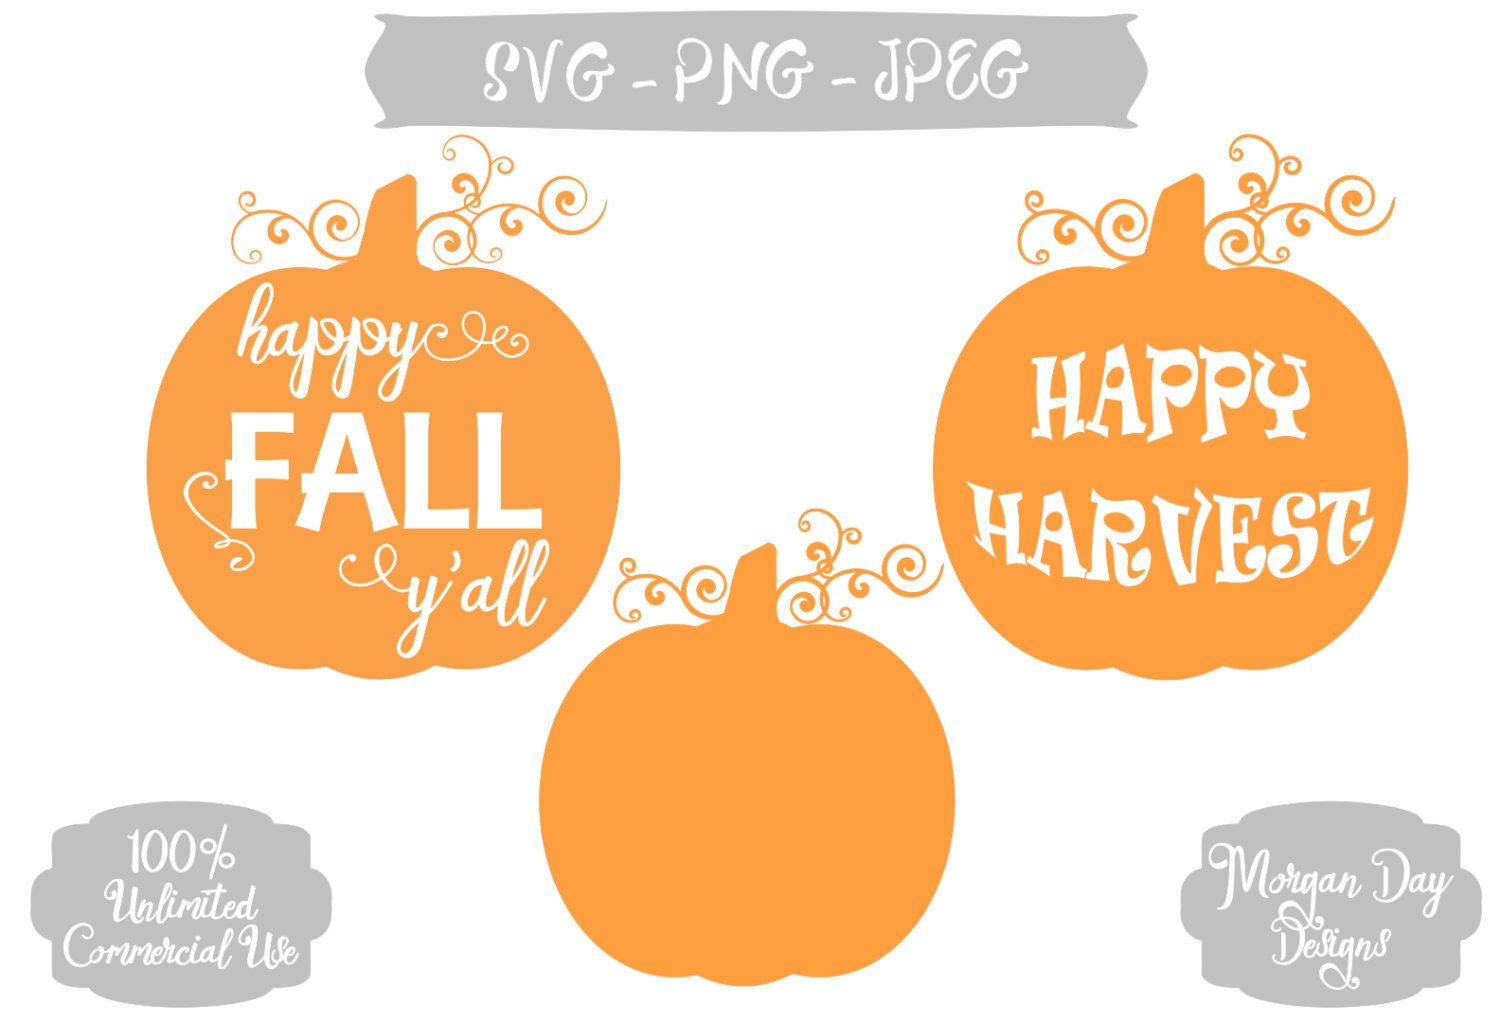 Happy Fall Y'all SVG, Fall, Harvest, Pumpkin Cuttable Vector, Commercial Use, Instant Download, Silhouette Studio, SVG Cut File by MorganDayDesigns on Etsy